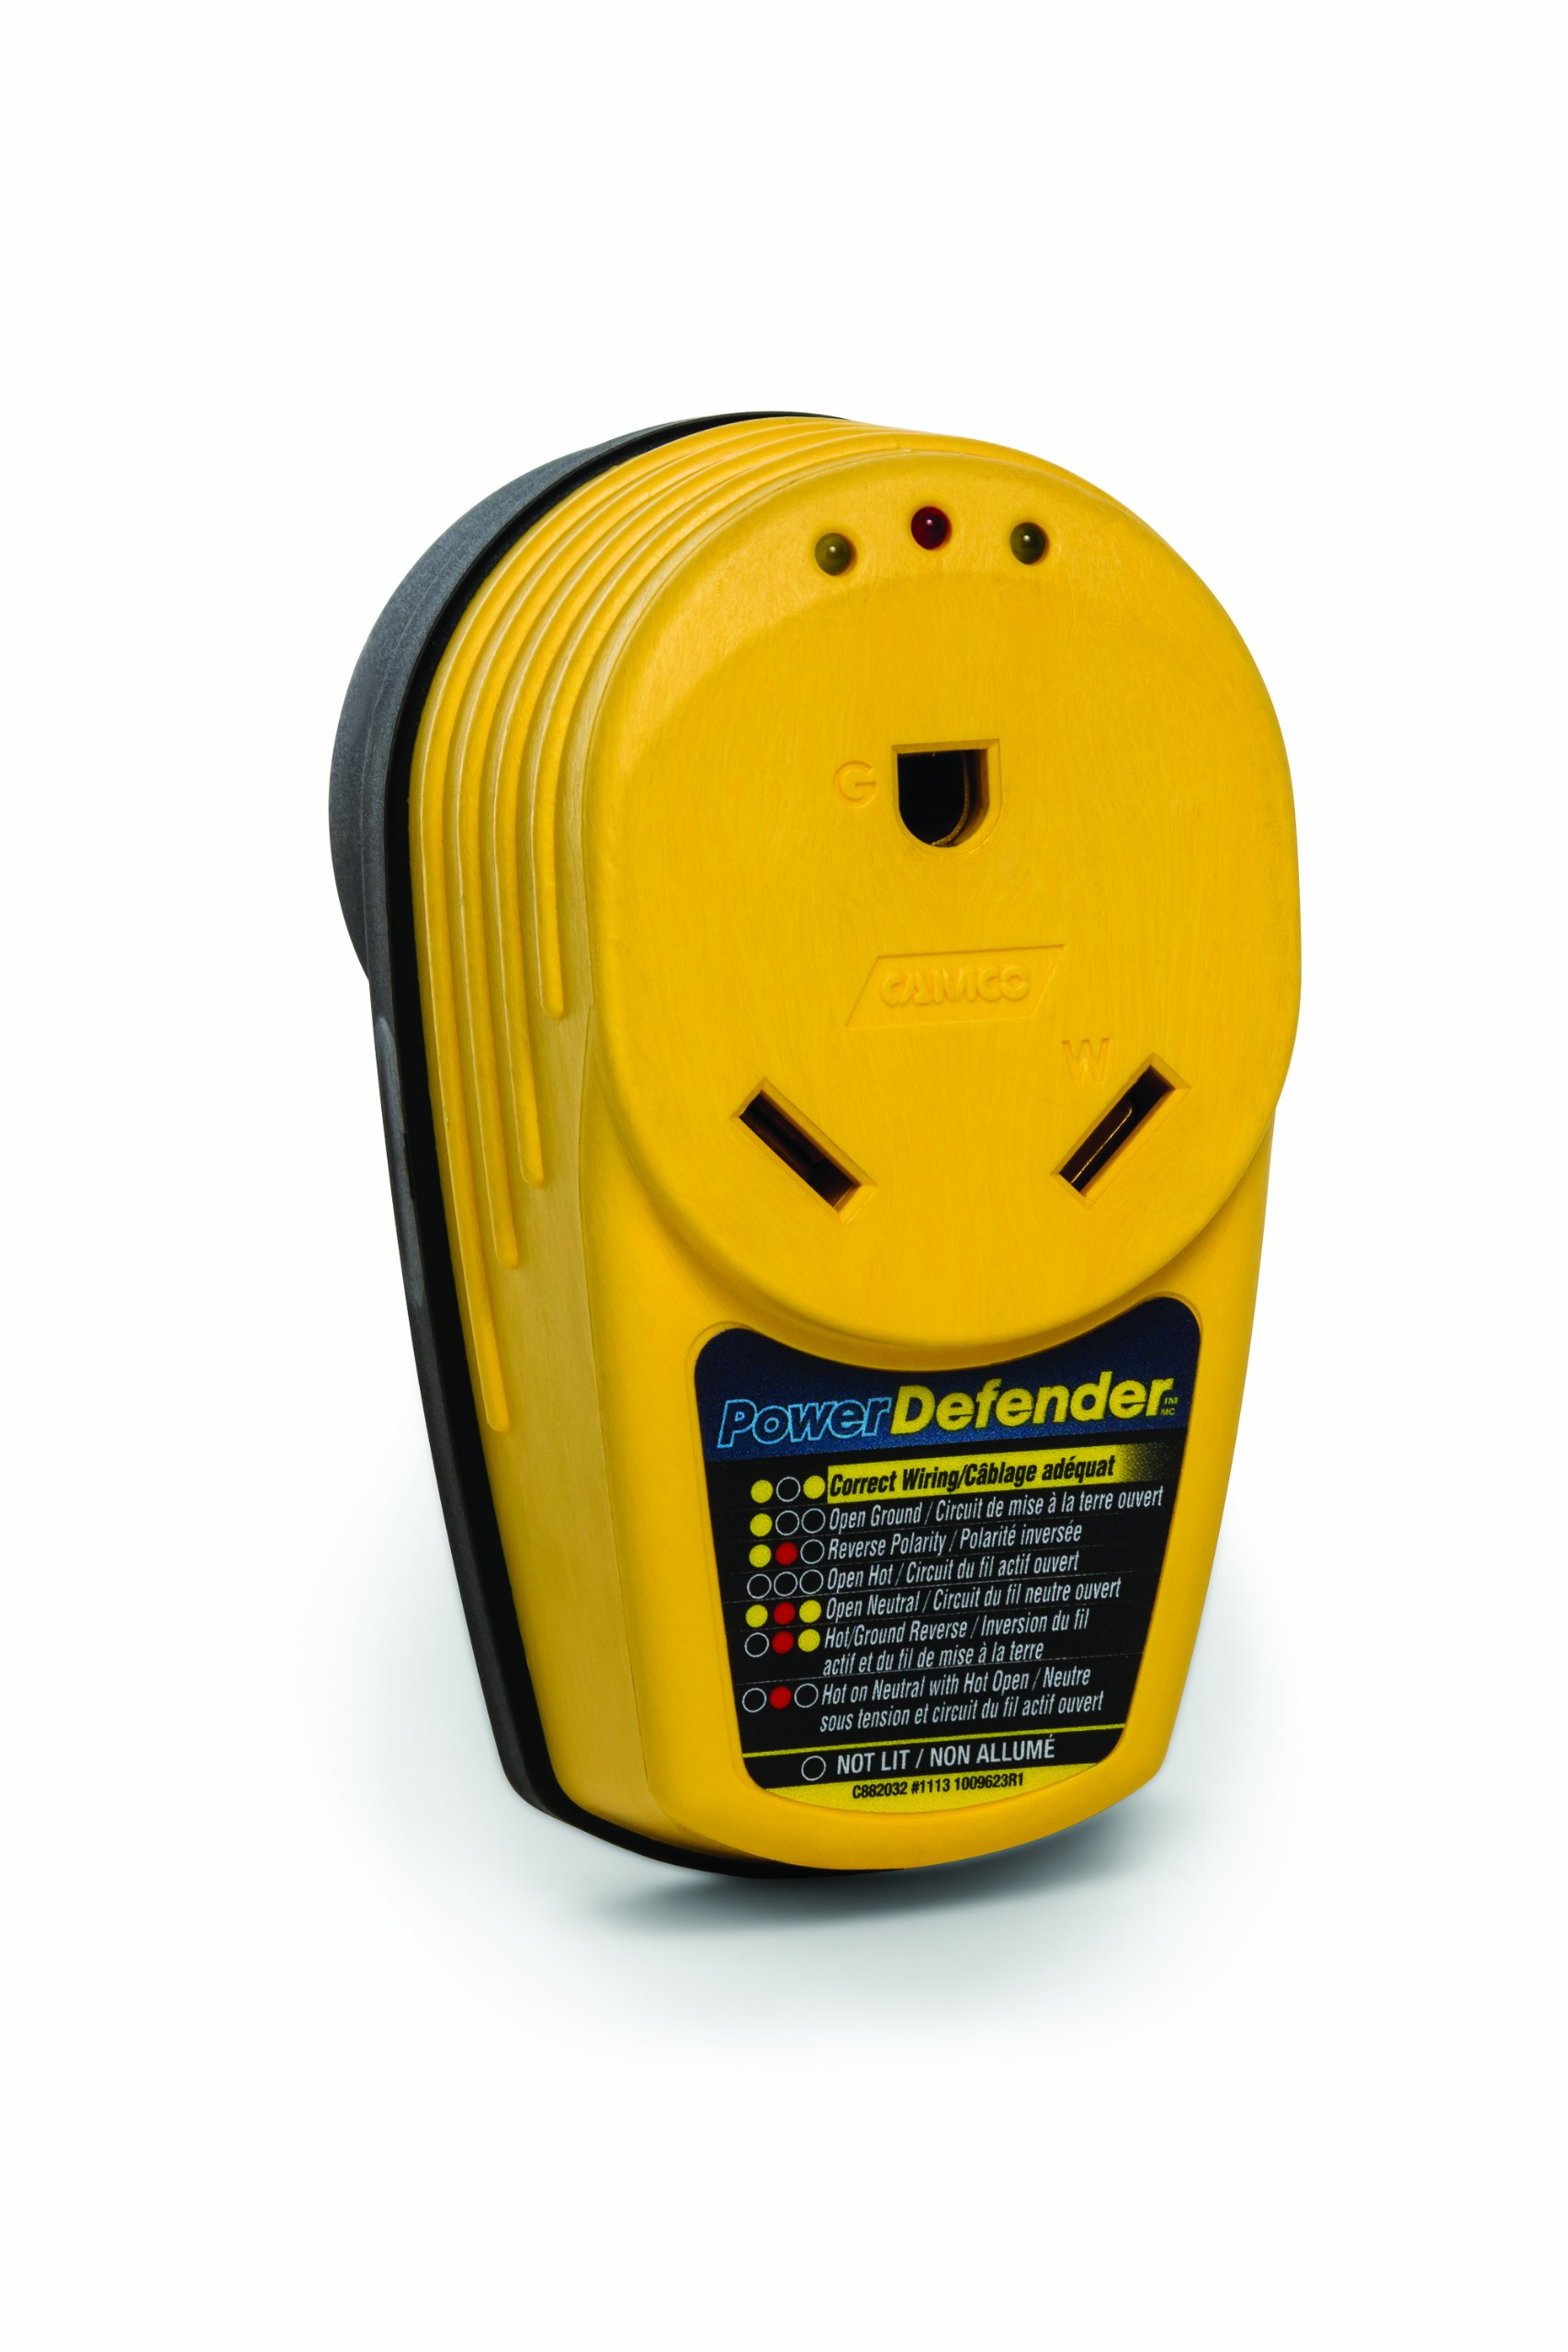 Camco PowerDefender Circuit Analyzer With Integrated Surge Protection and Indicator Lights, 30 Amp Male to 30 Amp Female (55310) by Camco (Image #1)